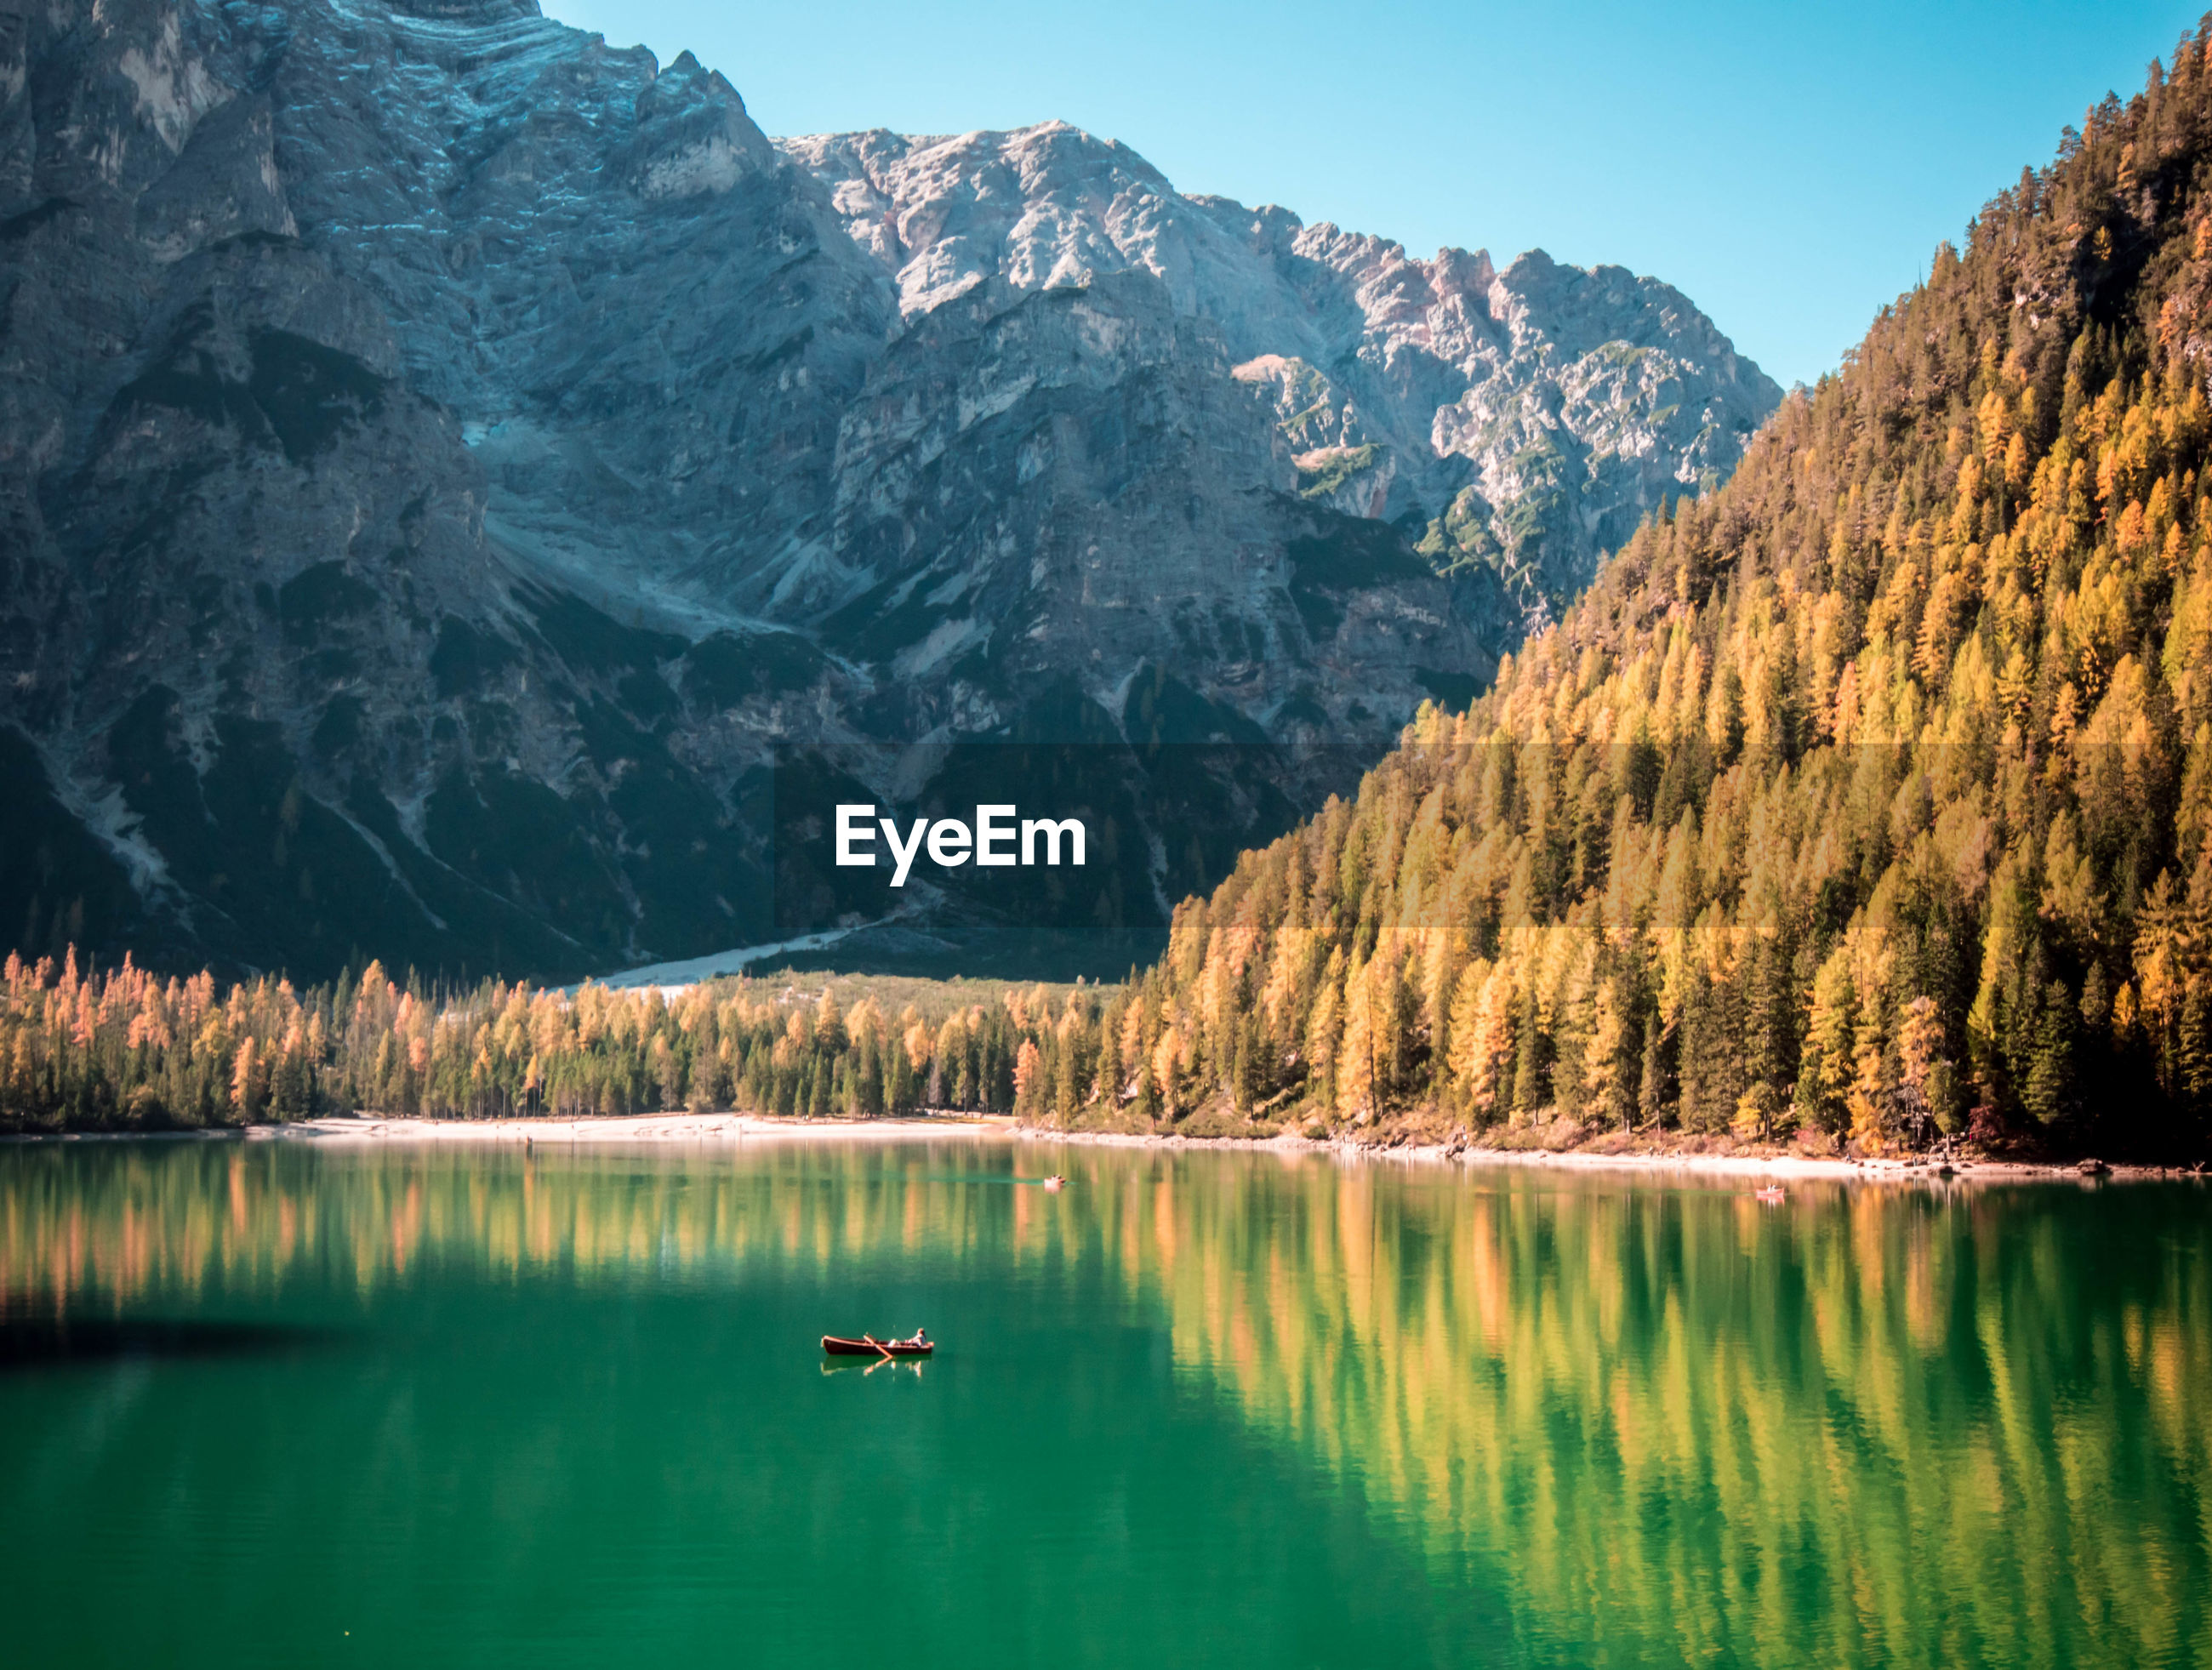 SCENIC VIEW OF CALM LAKE IN FRONT OF MOUNTAINS